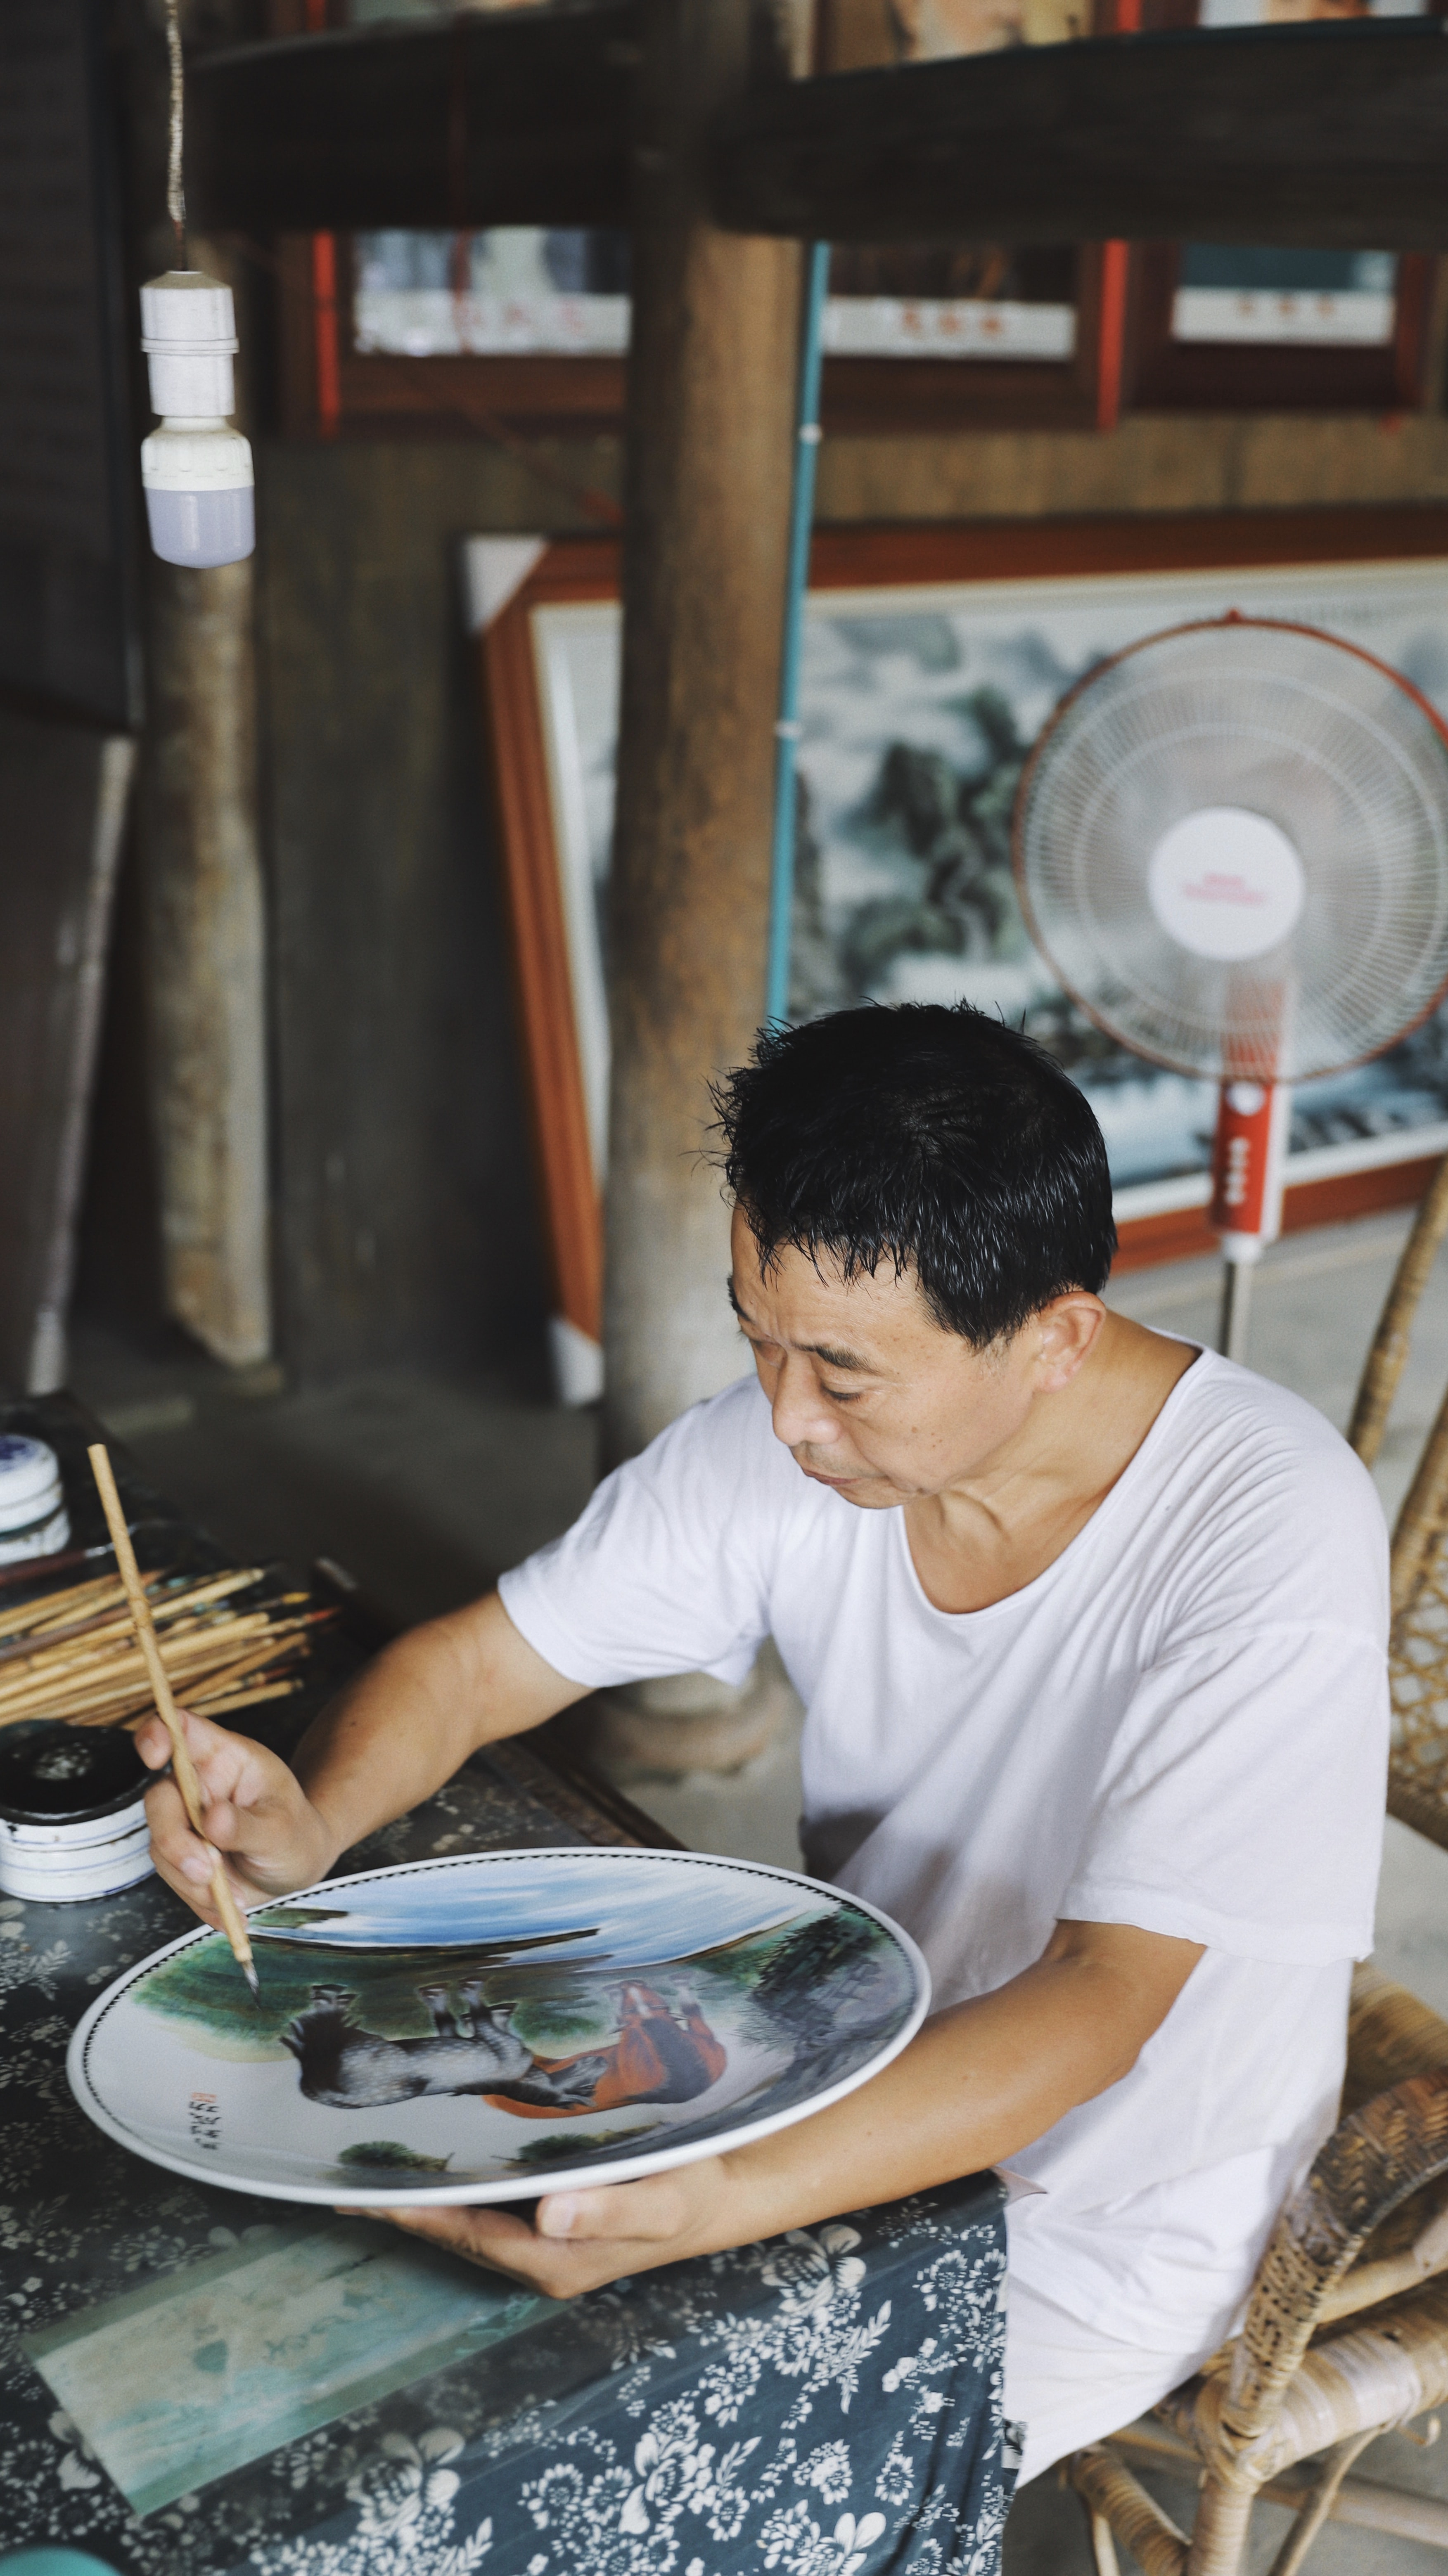 man sitting on chair while painting on plate